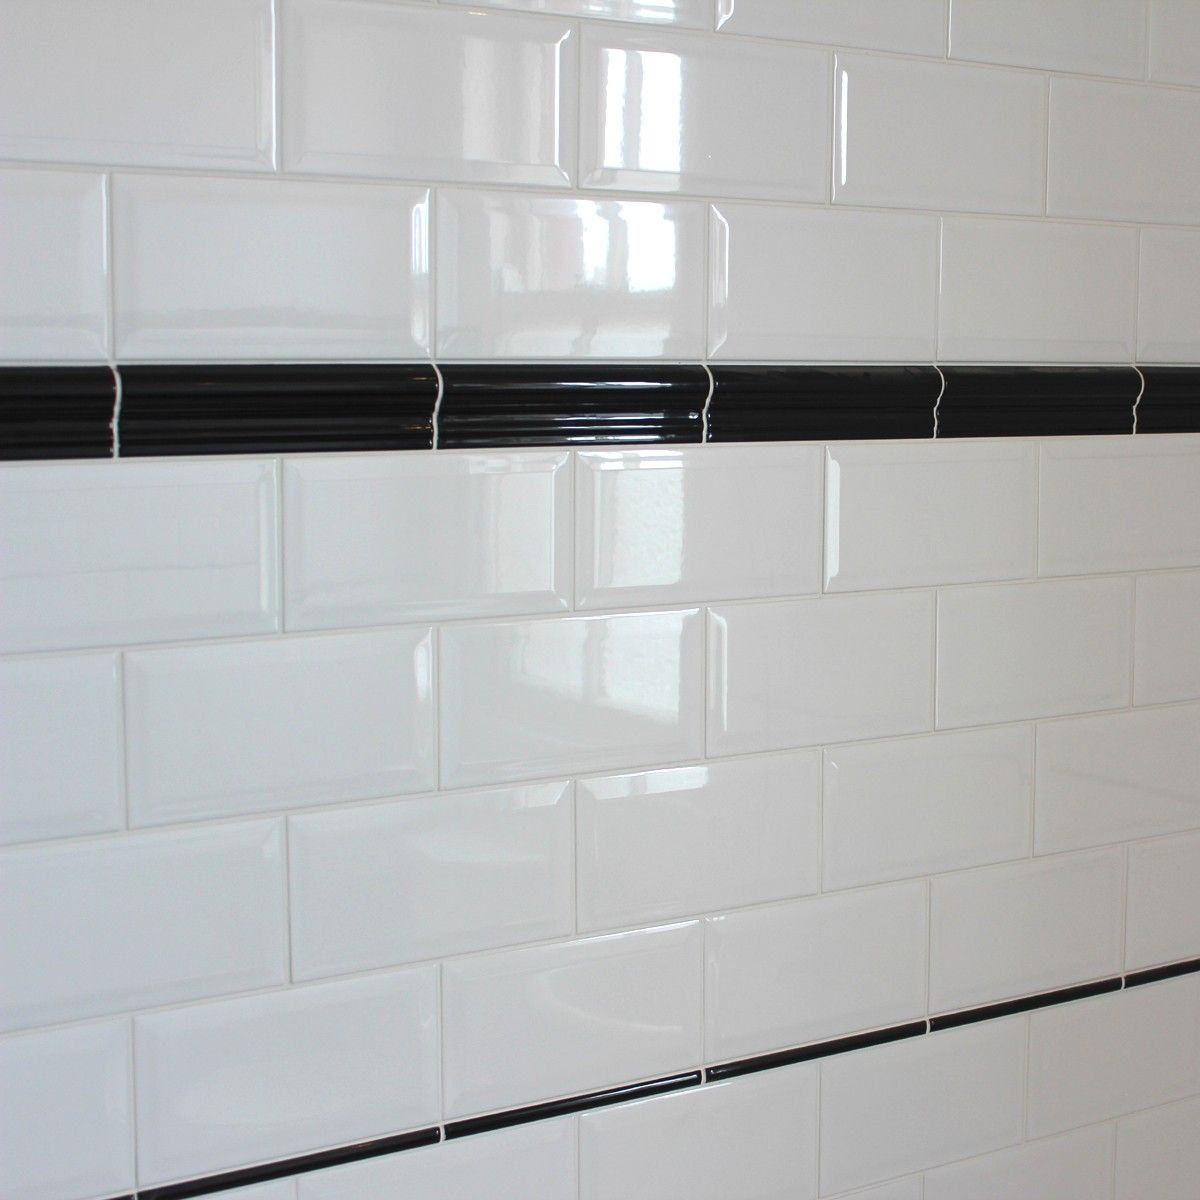 White Kitchen Wall Tiles bevelled edge ceramic wall tile, gloss white finish in a solid